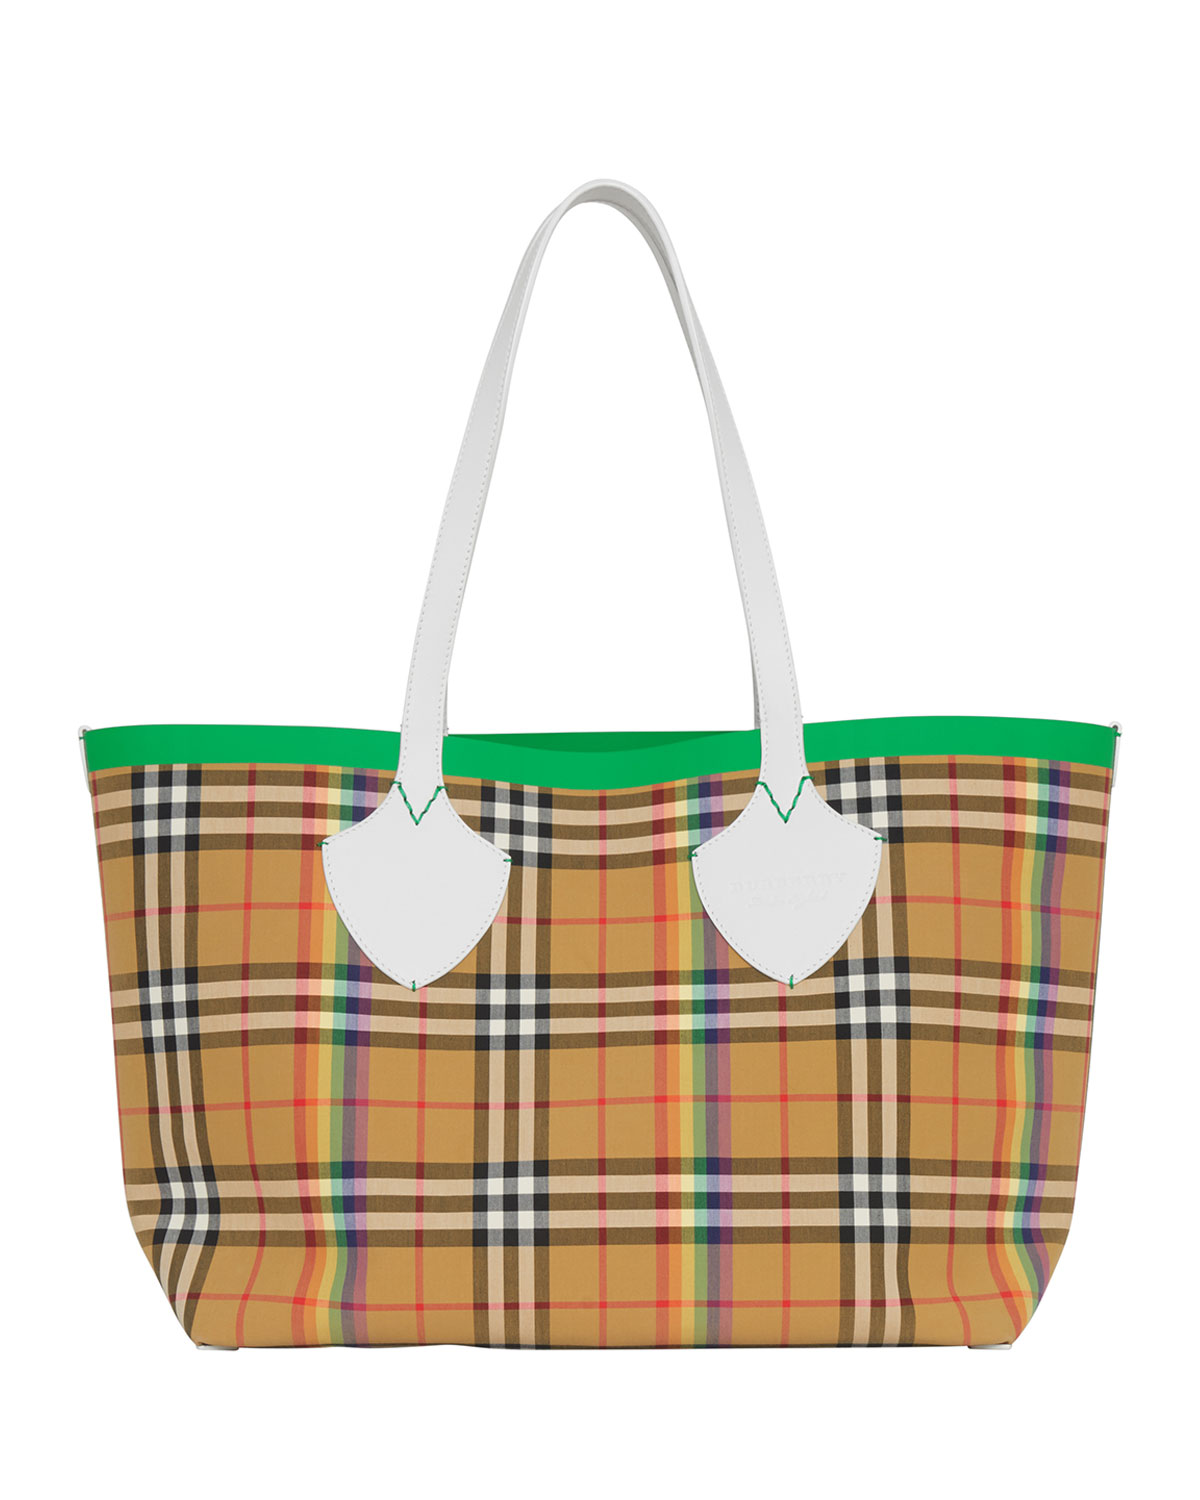 8aa63864f98d Burberry Medium Giant Rainbow Vintage Check Tote Bag